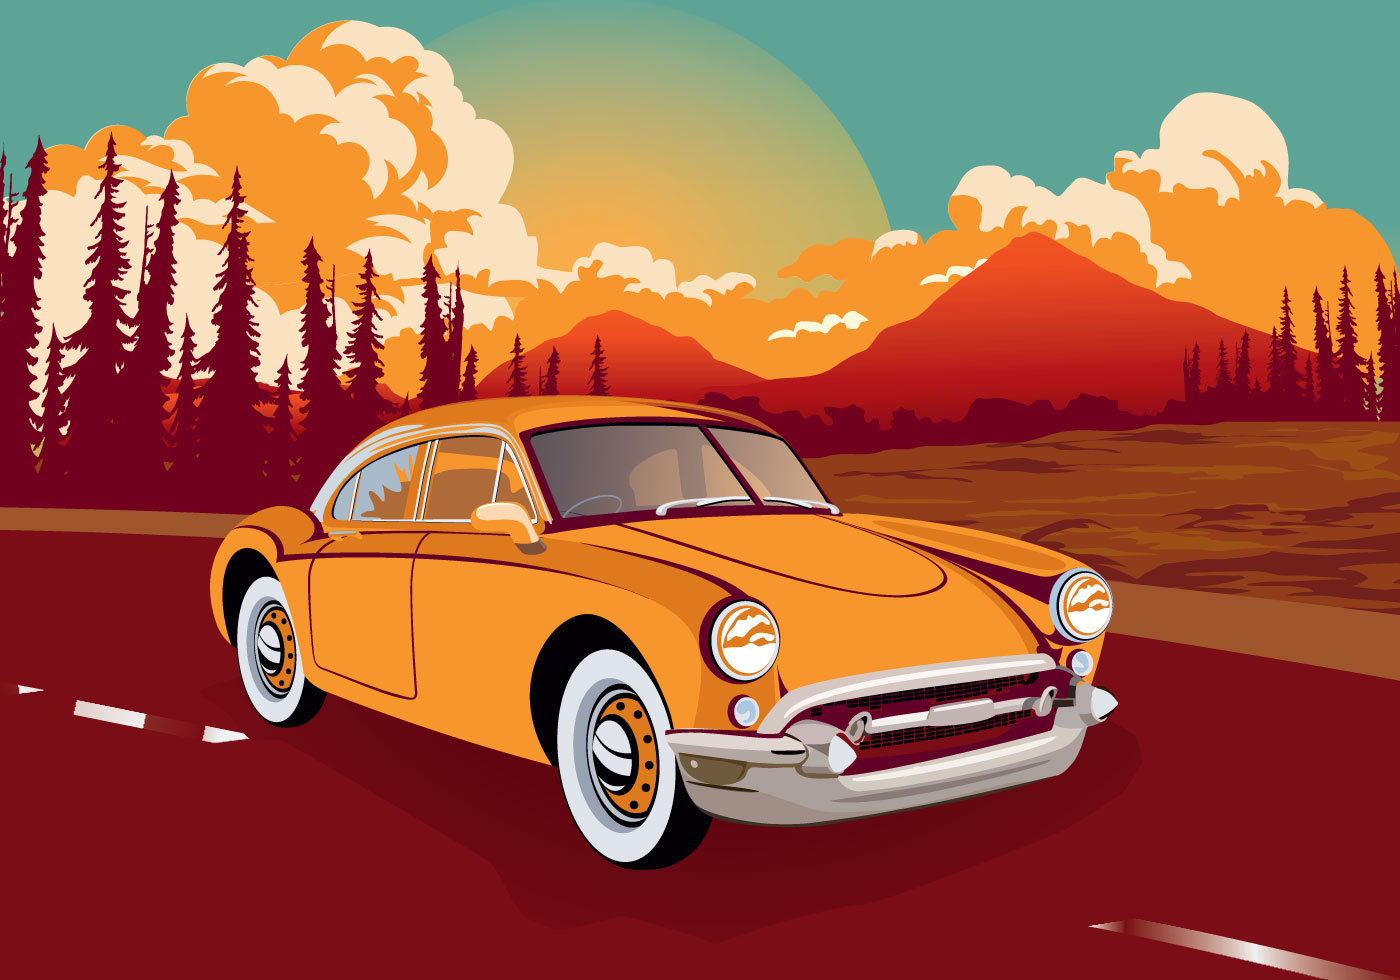 Vintage Classic Car Across The Road Vector Illustration - Download Free Vectors, Clipart Graphics & Vector Art